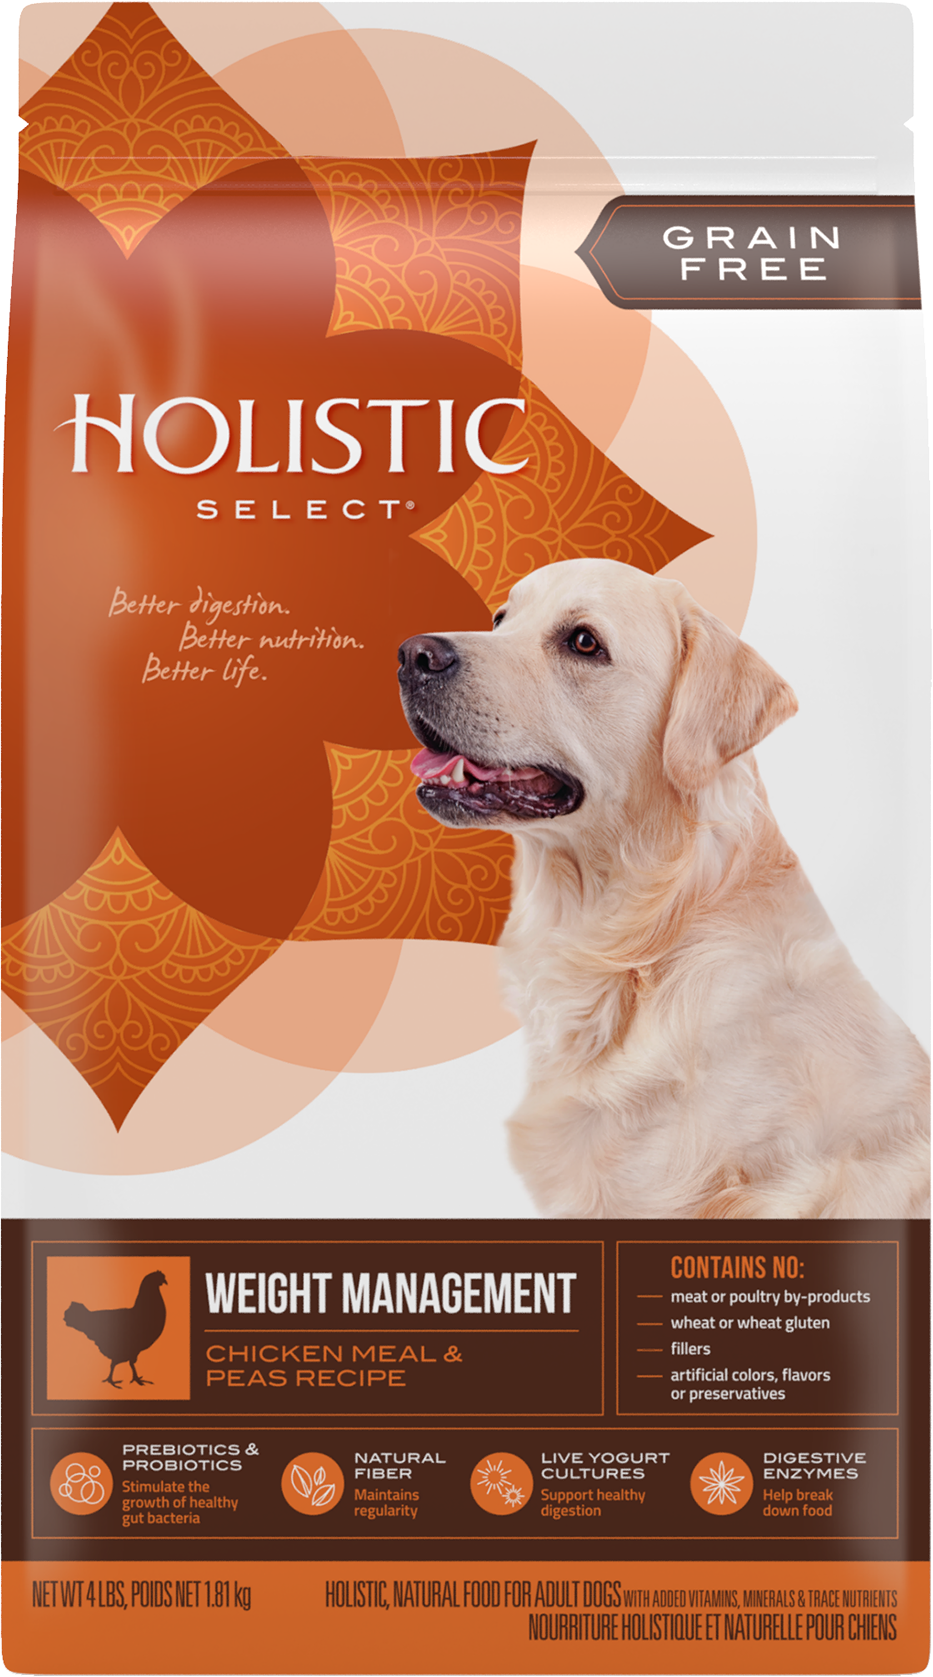 Holistic Select Grain Free Weight Management Chicken Meal & Peas